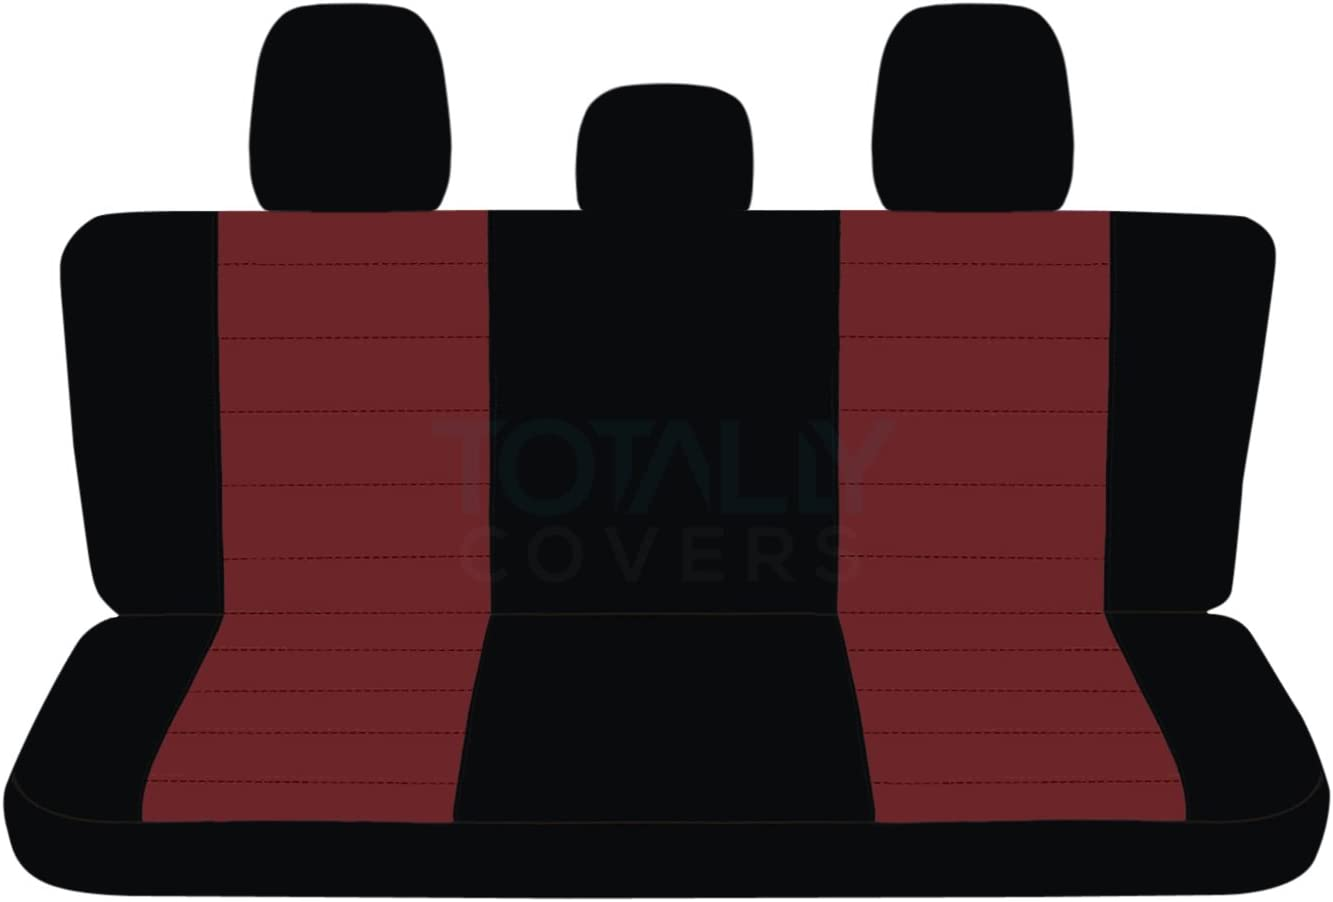 21 Colors w 3 Headrests Rear 60//40 Split Bench F-Series F150 w//wo Center Armrest: Black /& Gray Totally Covers Compatible with 2011-2014 Ford F-150 SuperCab//SuperCrew Two-Tone Truck Seat Covers